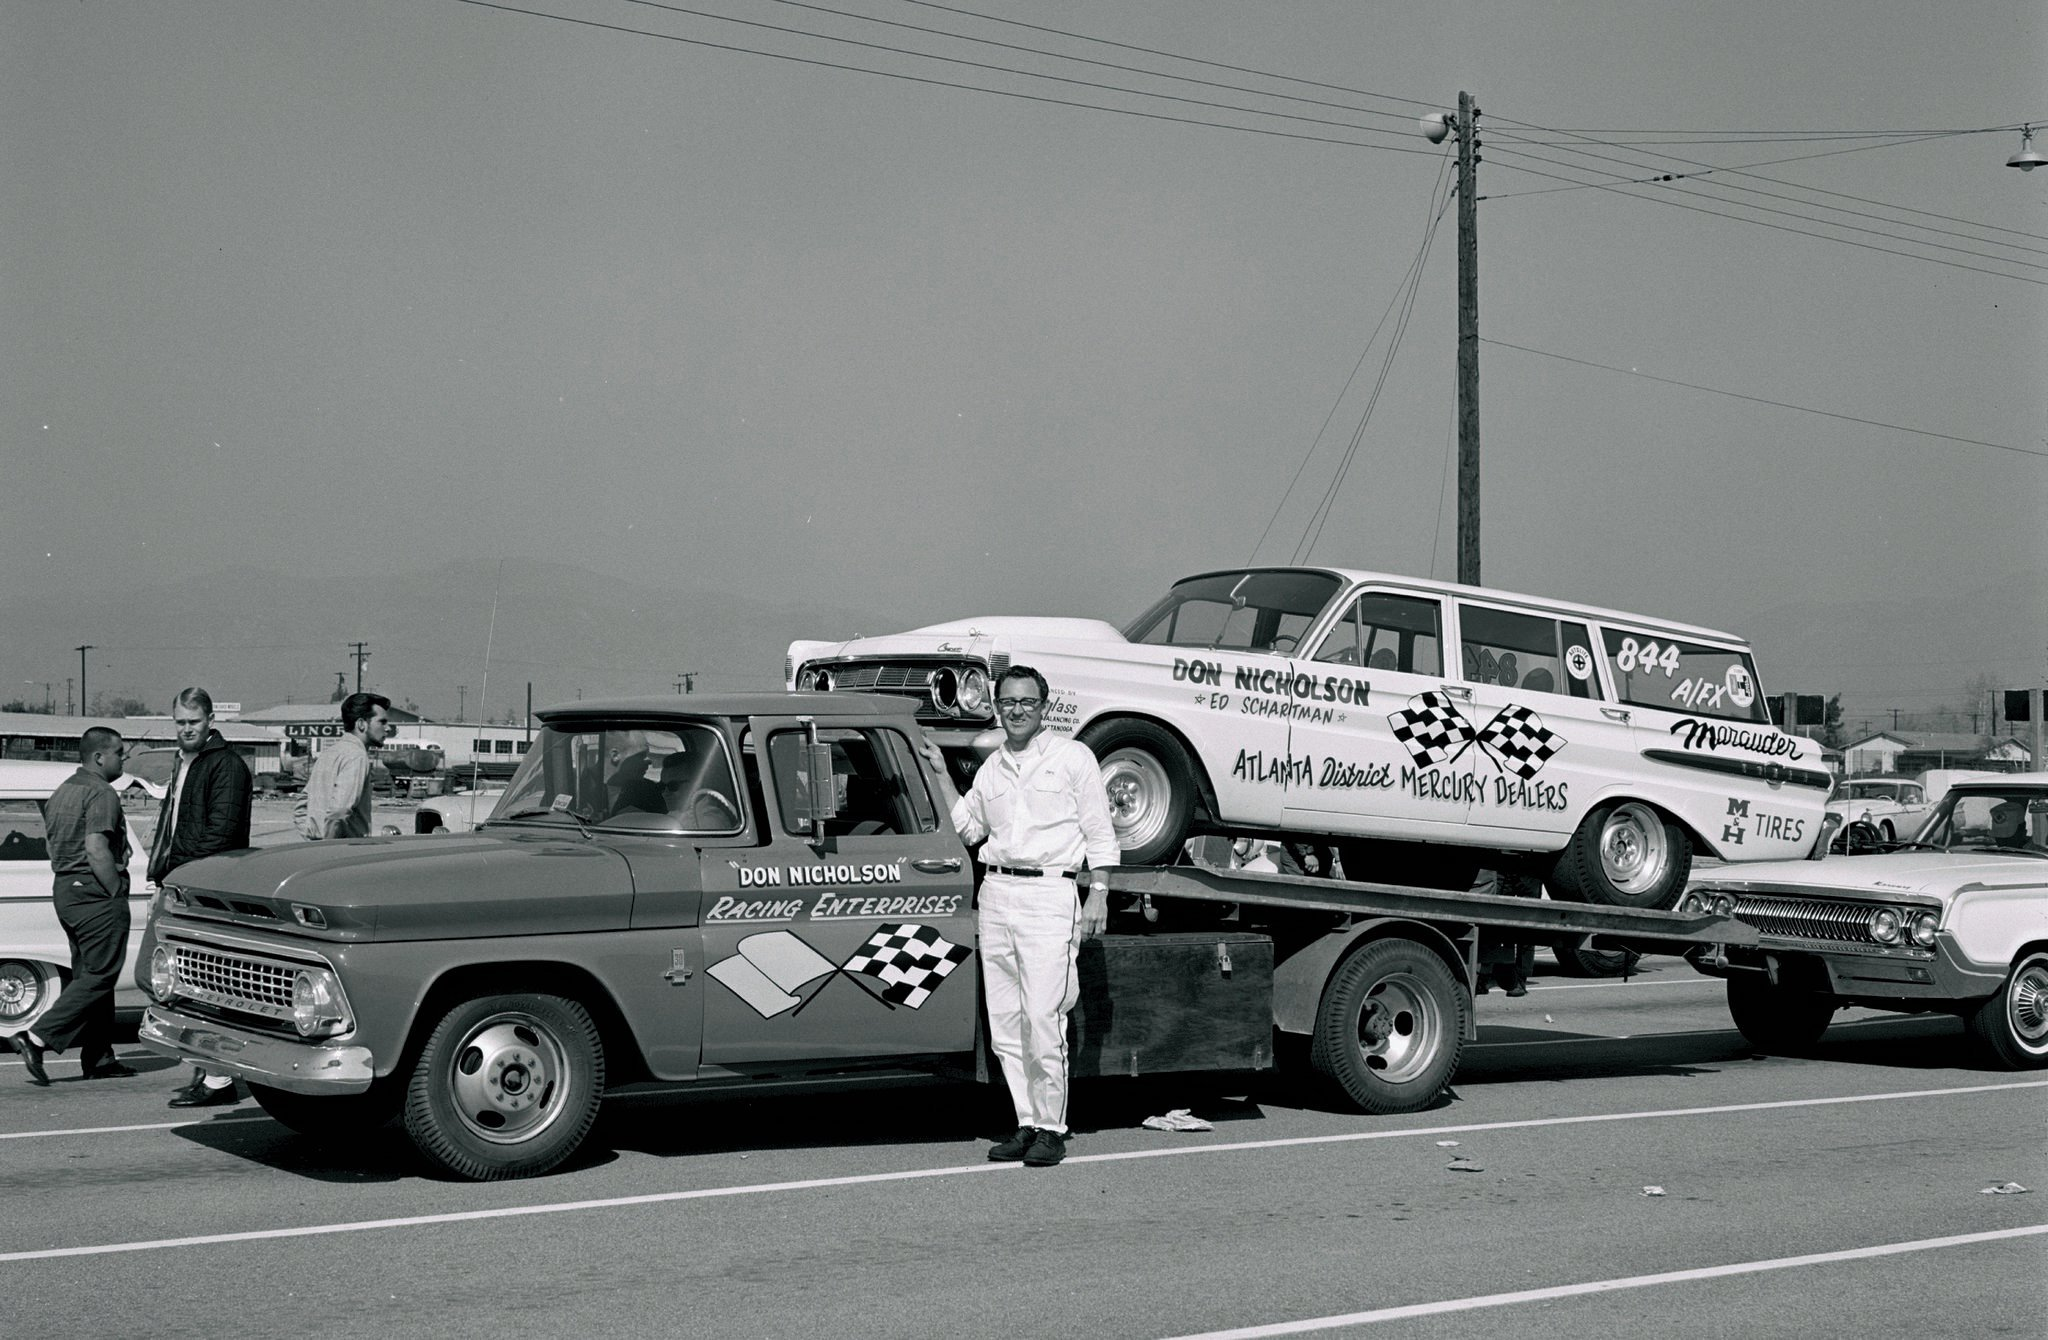 After GM pulled the plug on motorsports sponsorships, the only lingering evidence of Don Nicholson's dominating Chevrolet relationship was the ramp truck hauling his Ugly Duckling wagon to the Winternationals. Pomona's top 1961-'62 Stock Eliminator racer set low e.t. for A/FXers at 11.48 and lowered the national record to 11.60 before suffering a holeshot upset against Ronnie Sox's Caliente in the all-Mercury Factory Stock Eliminator final, 11.49-11.47.